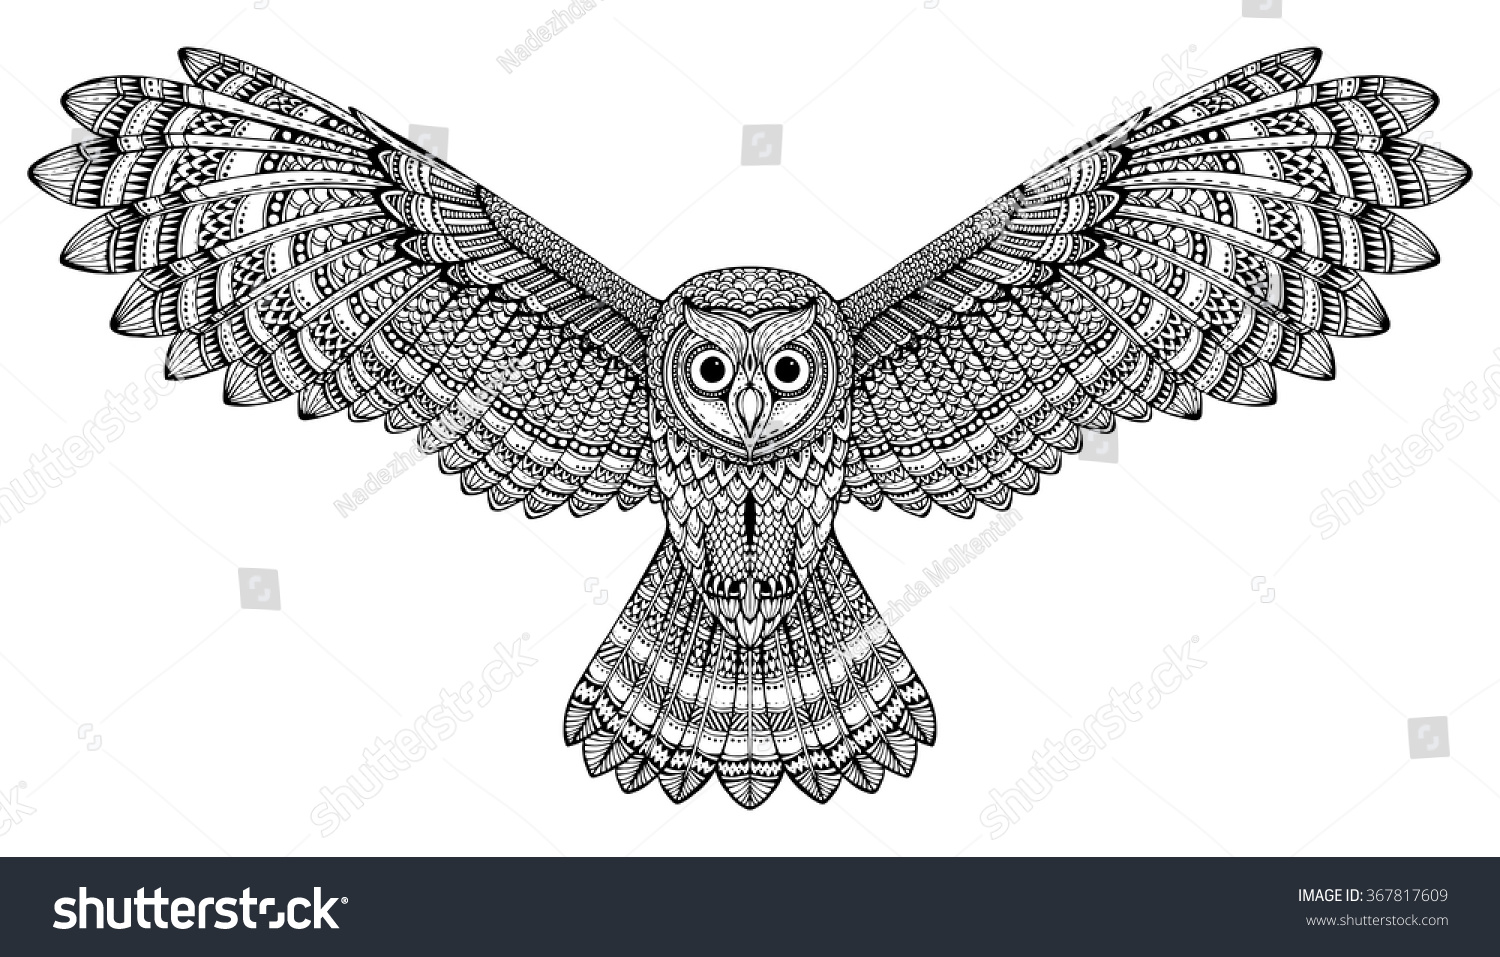 Flying owl drawings black and white - photo#9